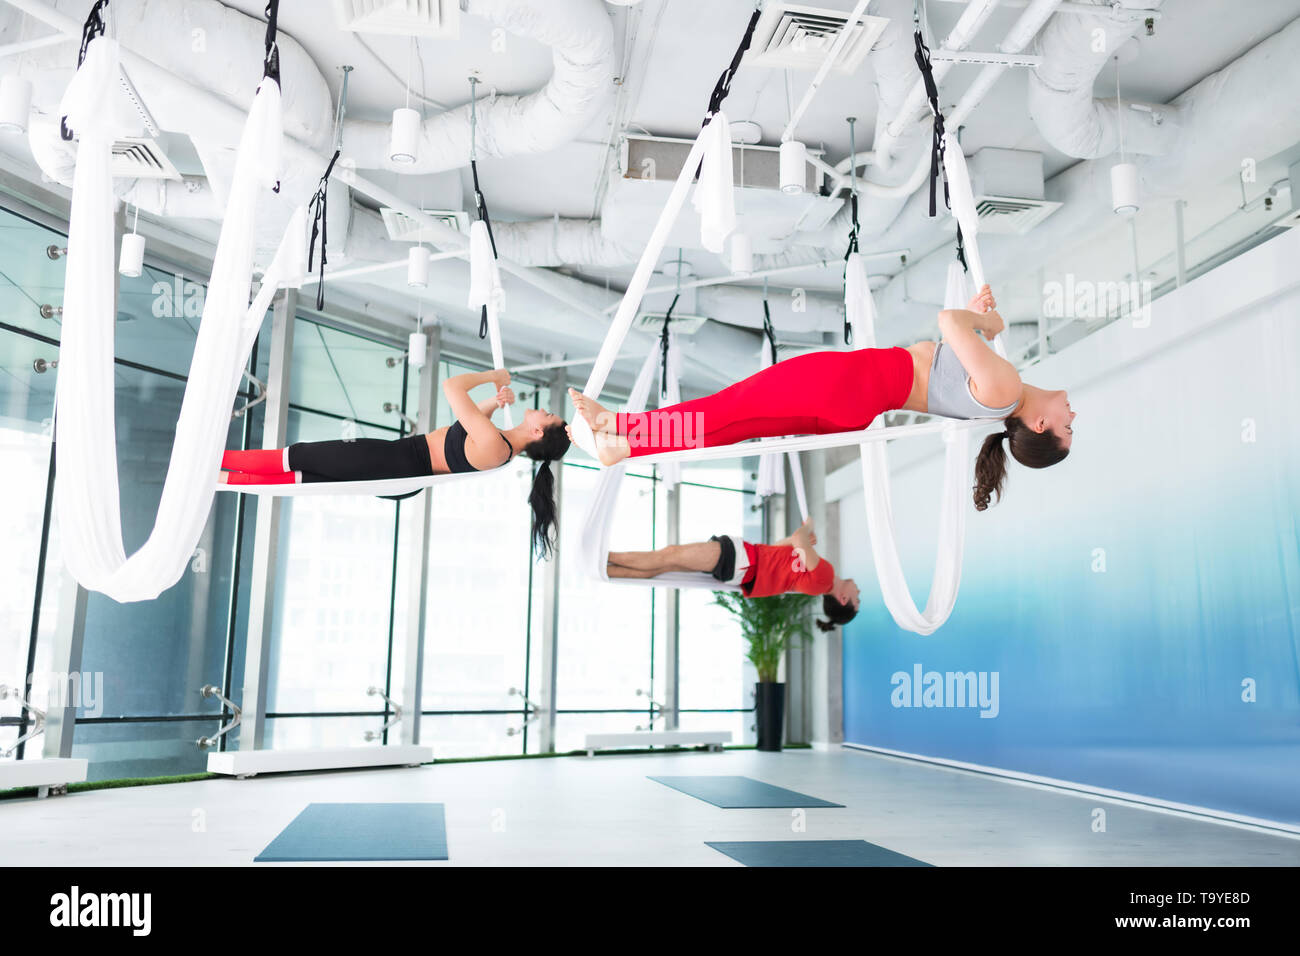 Two women and man wearing comfy clothes doing aerial yoga - Stock Image